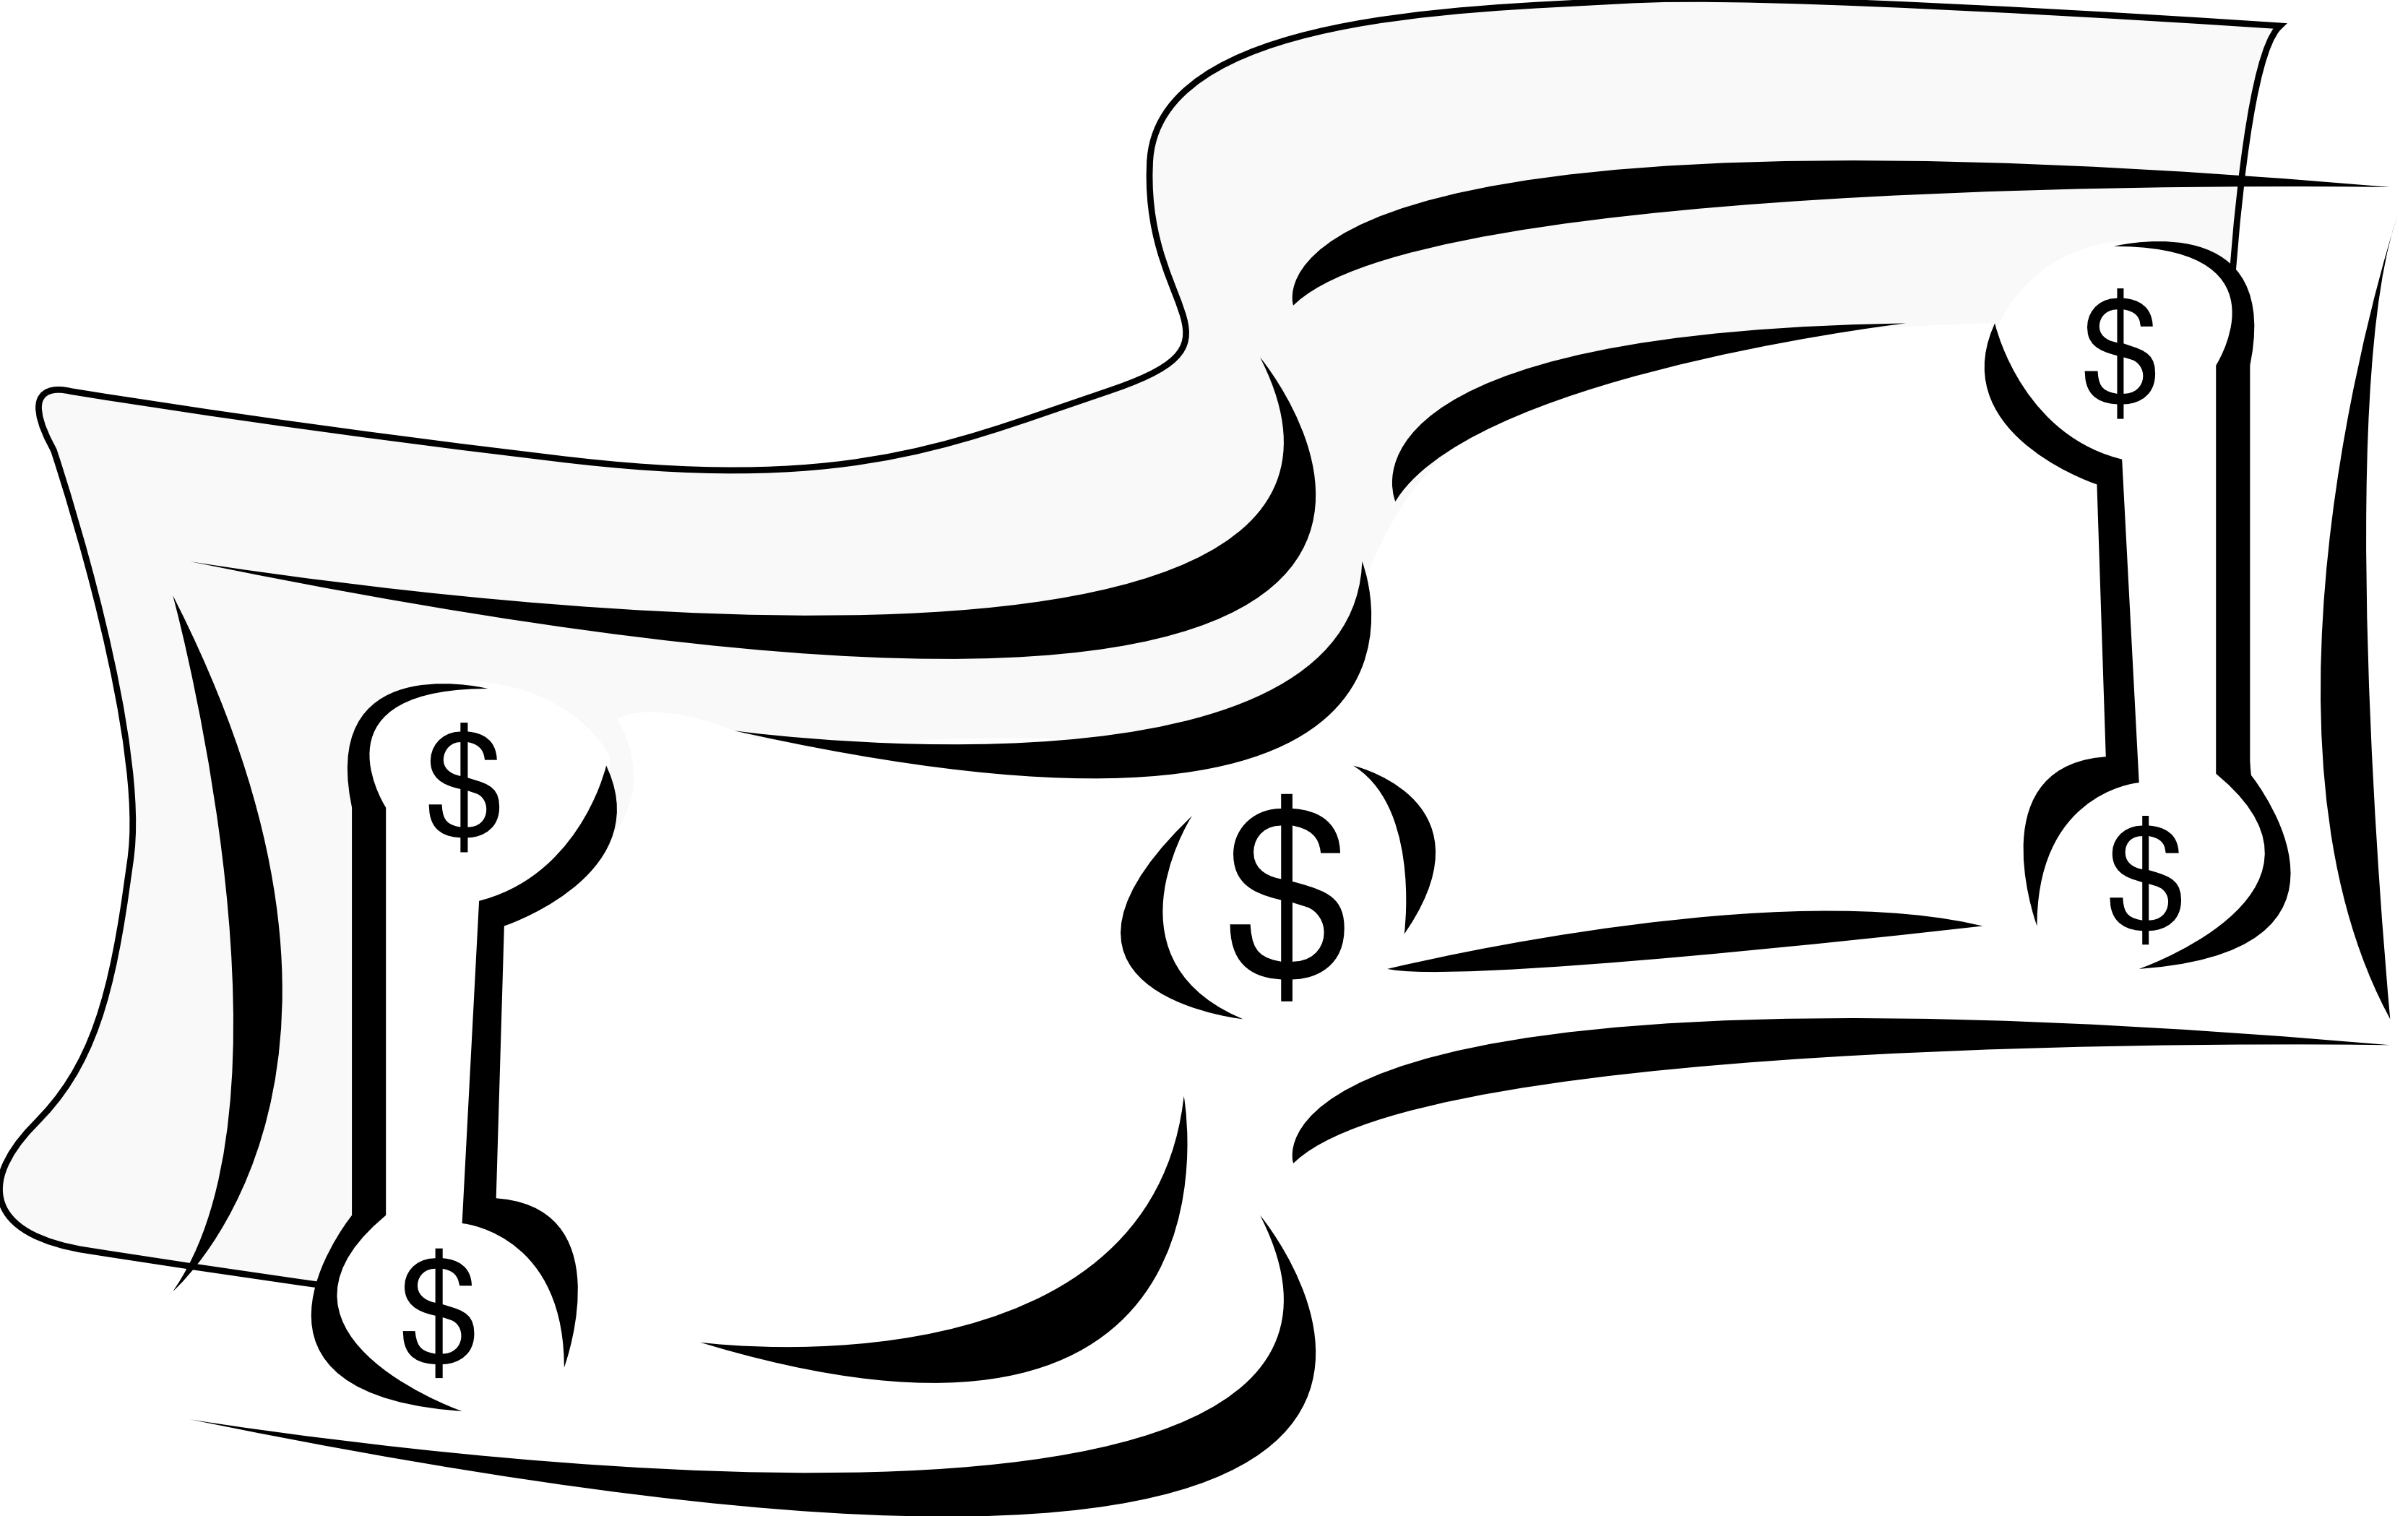 Clipart Black And White Artfavor Stylized Dollar Bill Money Black